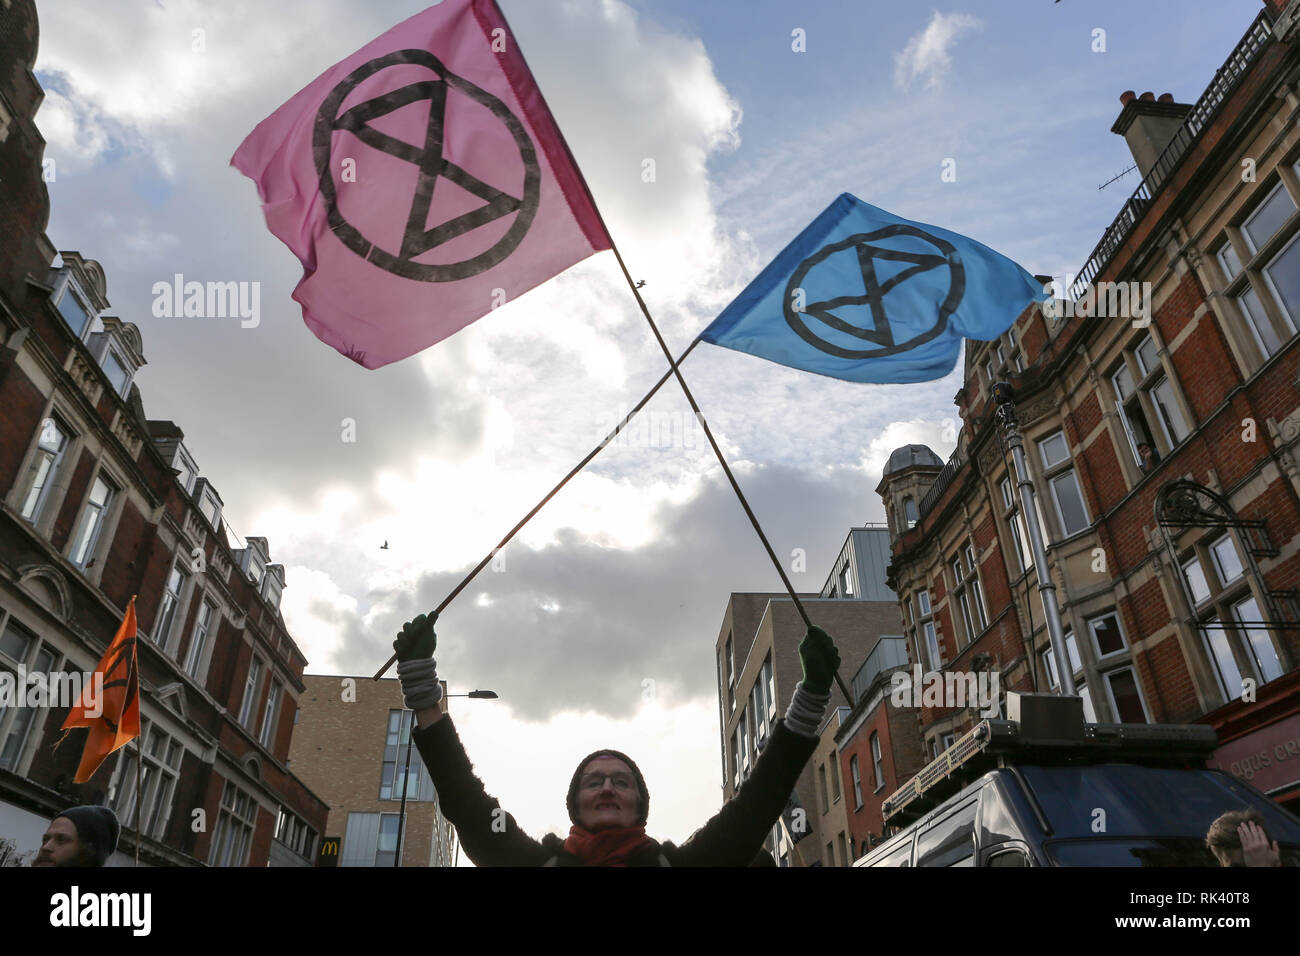 London, UK.. 9th Feb, 2019. Environmental protesters meet outside Dalston Kingsland railway station for a variety of street performances, engagement with the local community and number of short road blocks. Credit: Penelope Barritt/Alamy Live News Stock Photo